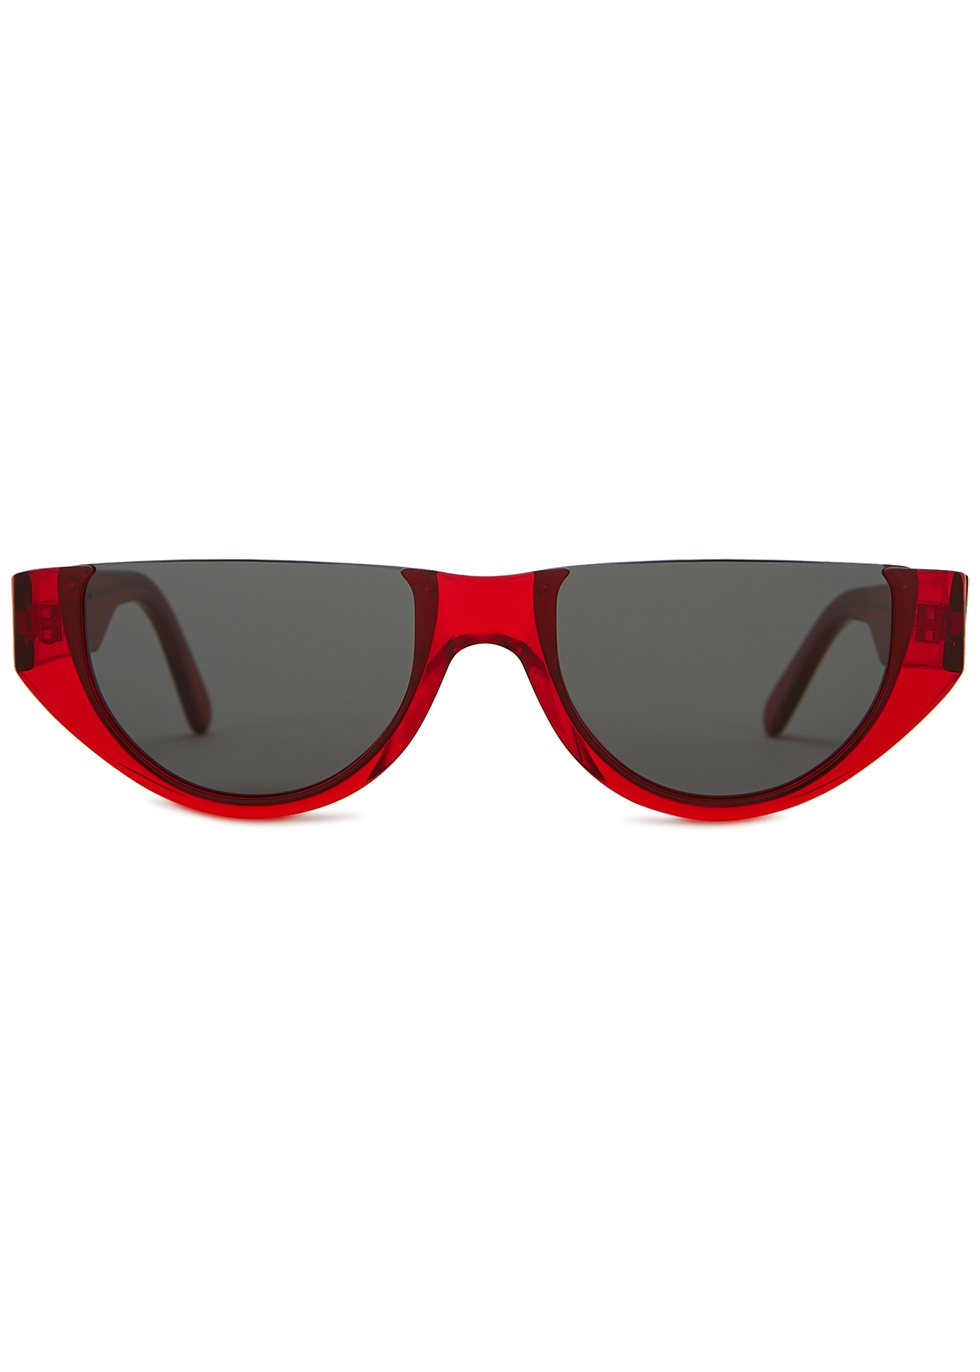 Florence red D-frame sunglasses - Finlay & Co